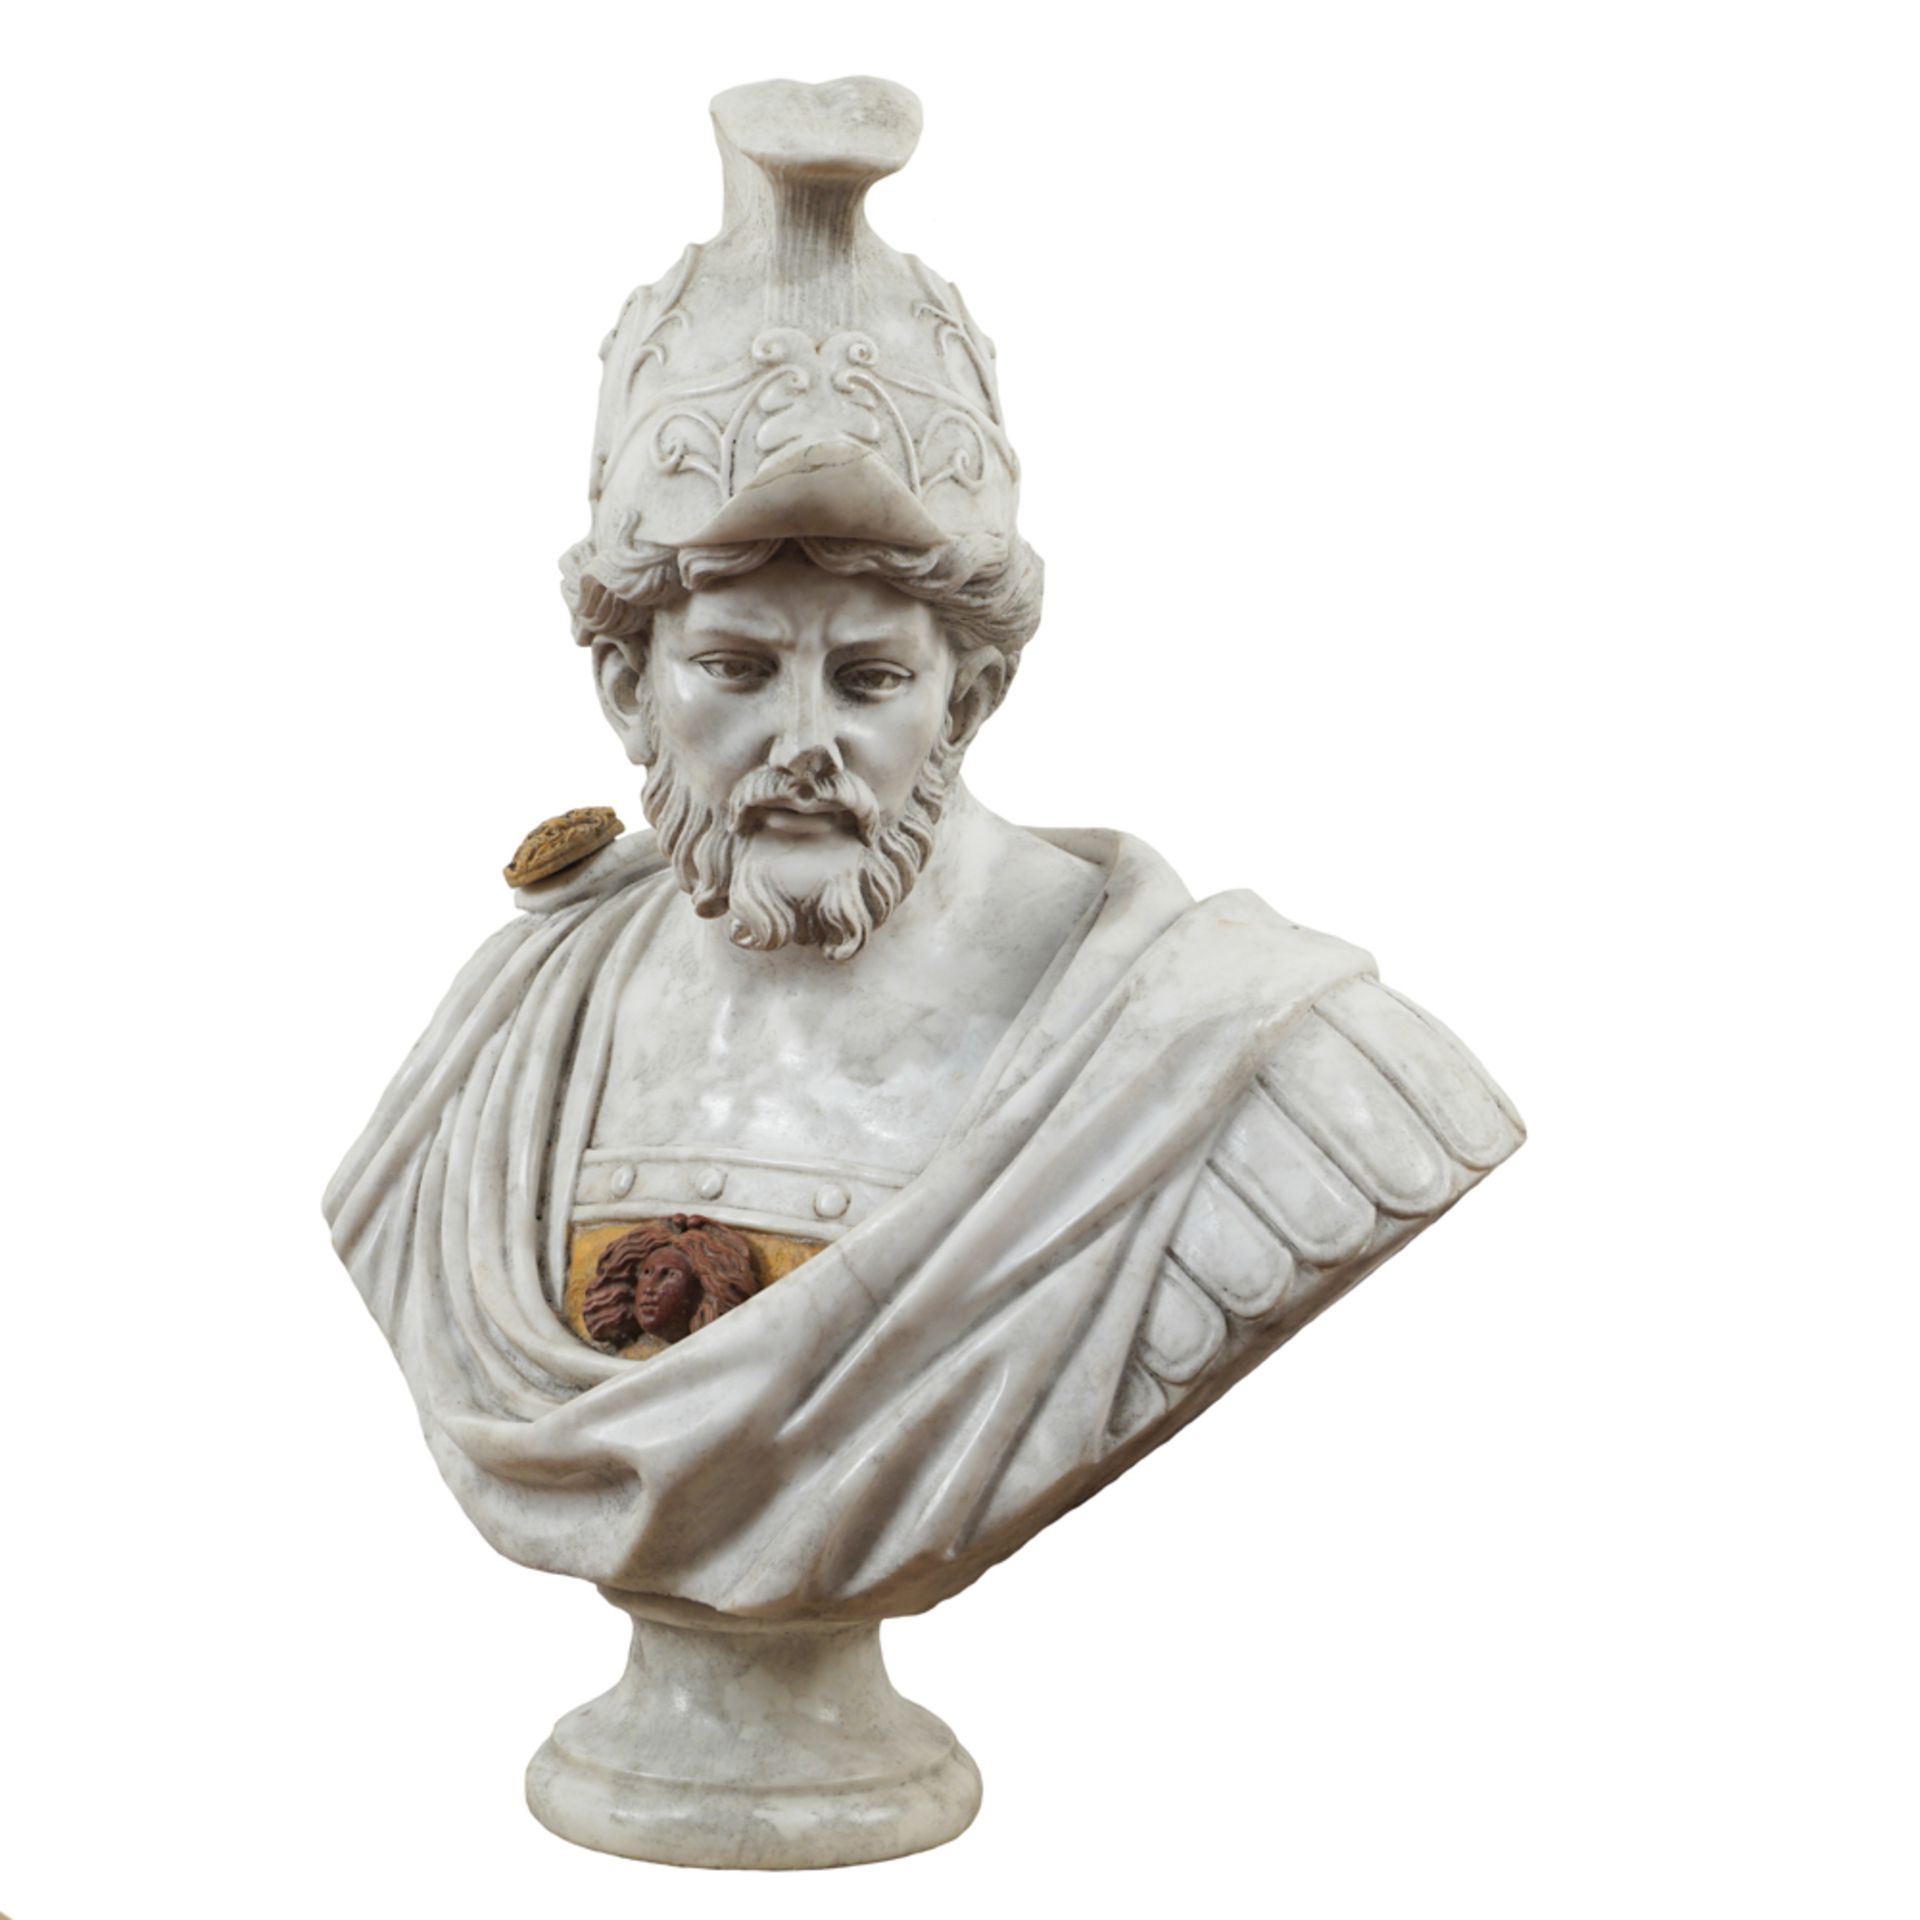 White, red and Yellow Siena marble bust 20th century 82x62x36 cm. - Image 2 of 3